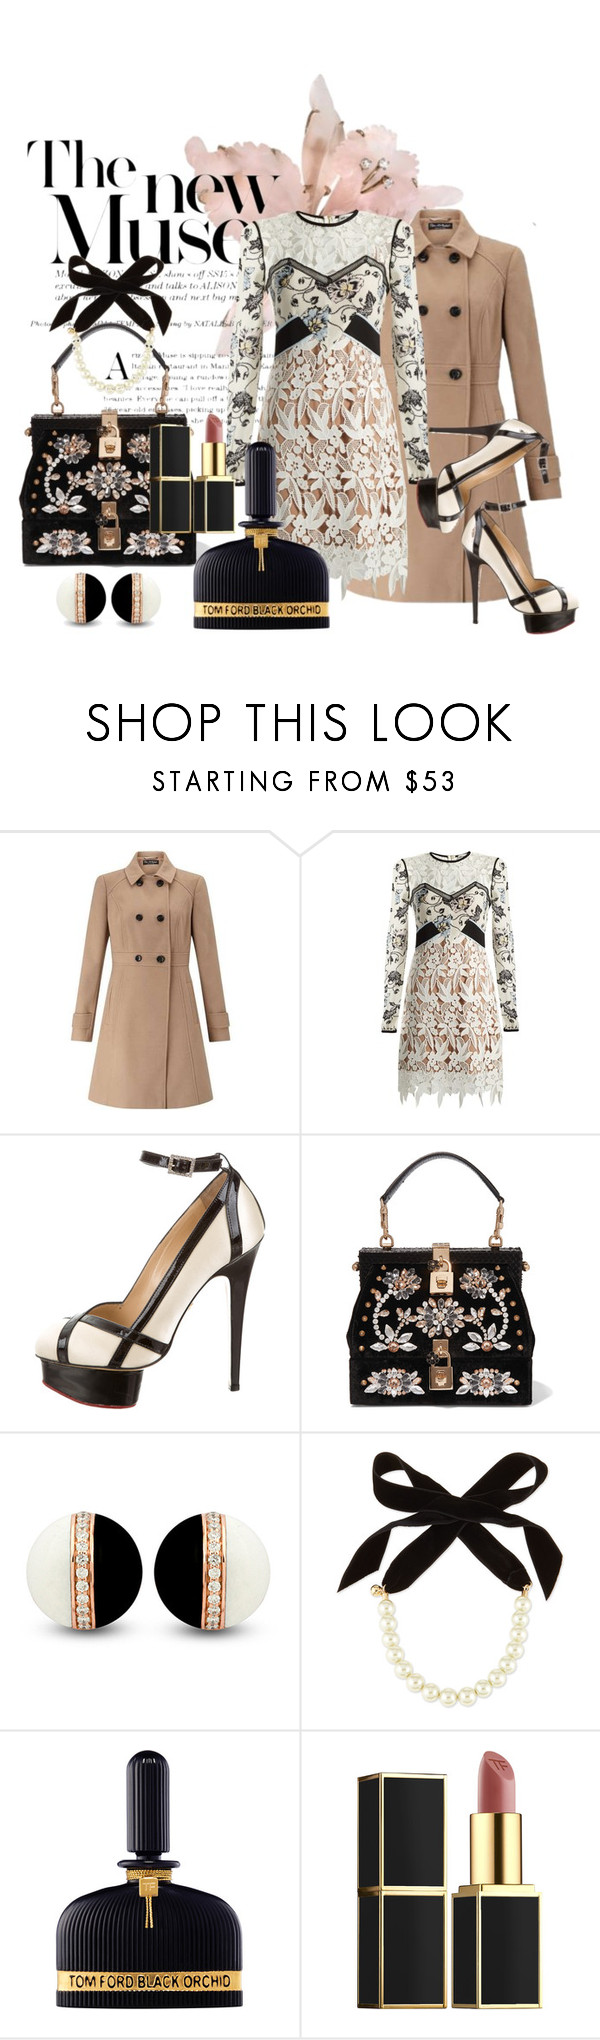 """""""The new Muse"""" by mariloli1303 ❤ liked on Polyvore featuring Miss Selfridge, self-portrait, Charlotte Olympia, Dolce&Gabbana, Lulu Frost and Tom Ford"""